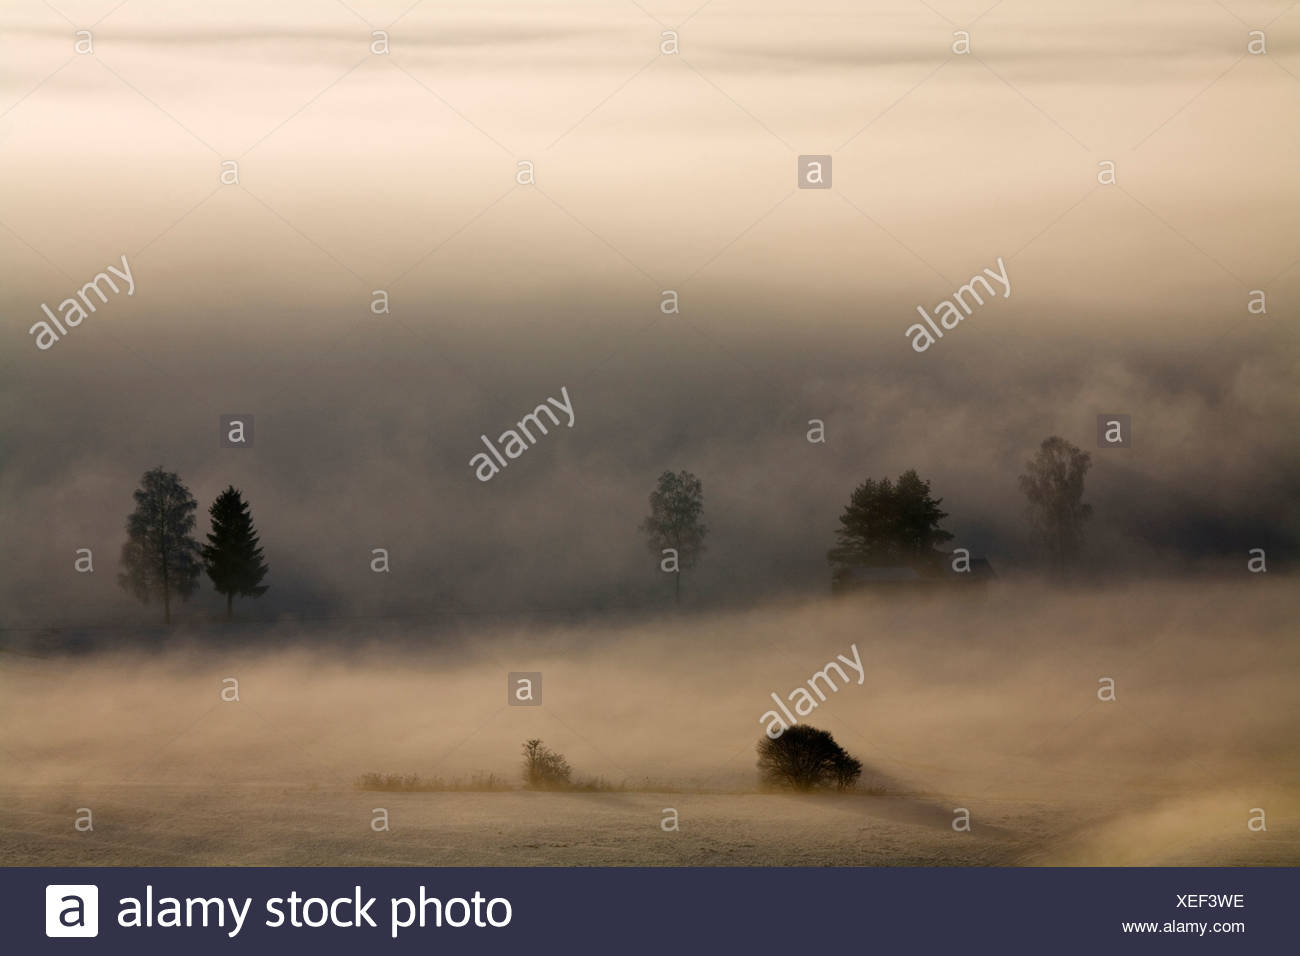 Germany, Bavaria, Murnau, Misty landscape Stock Photo